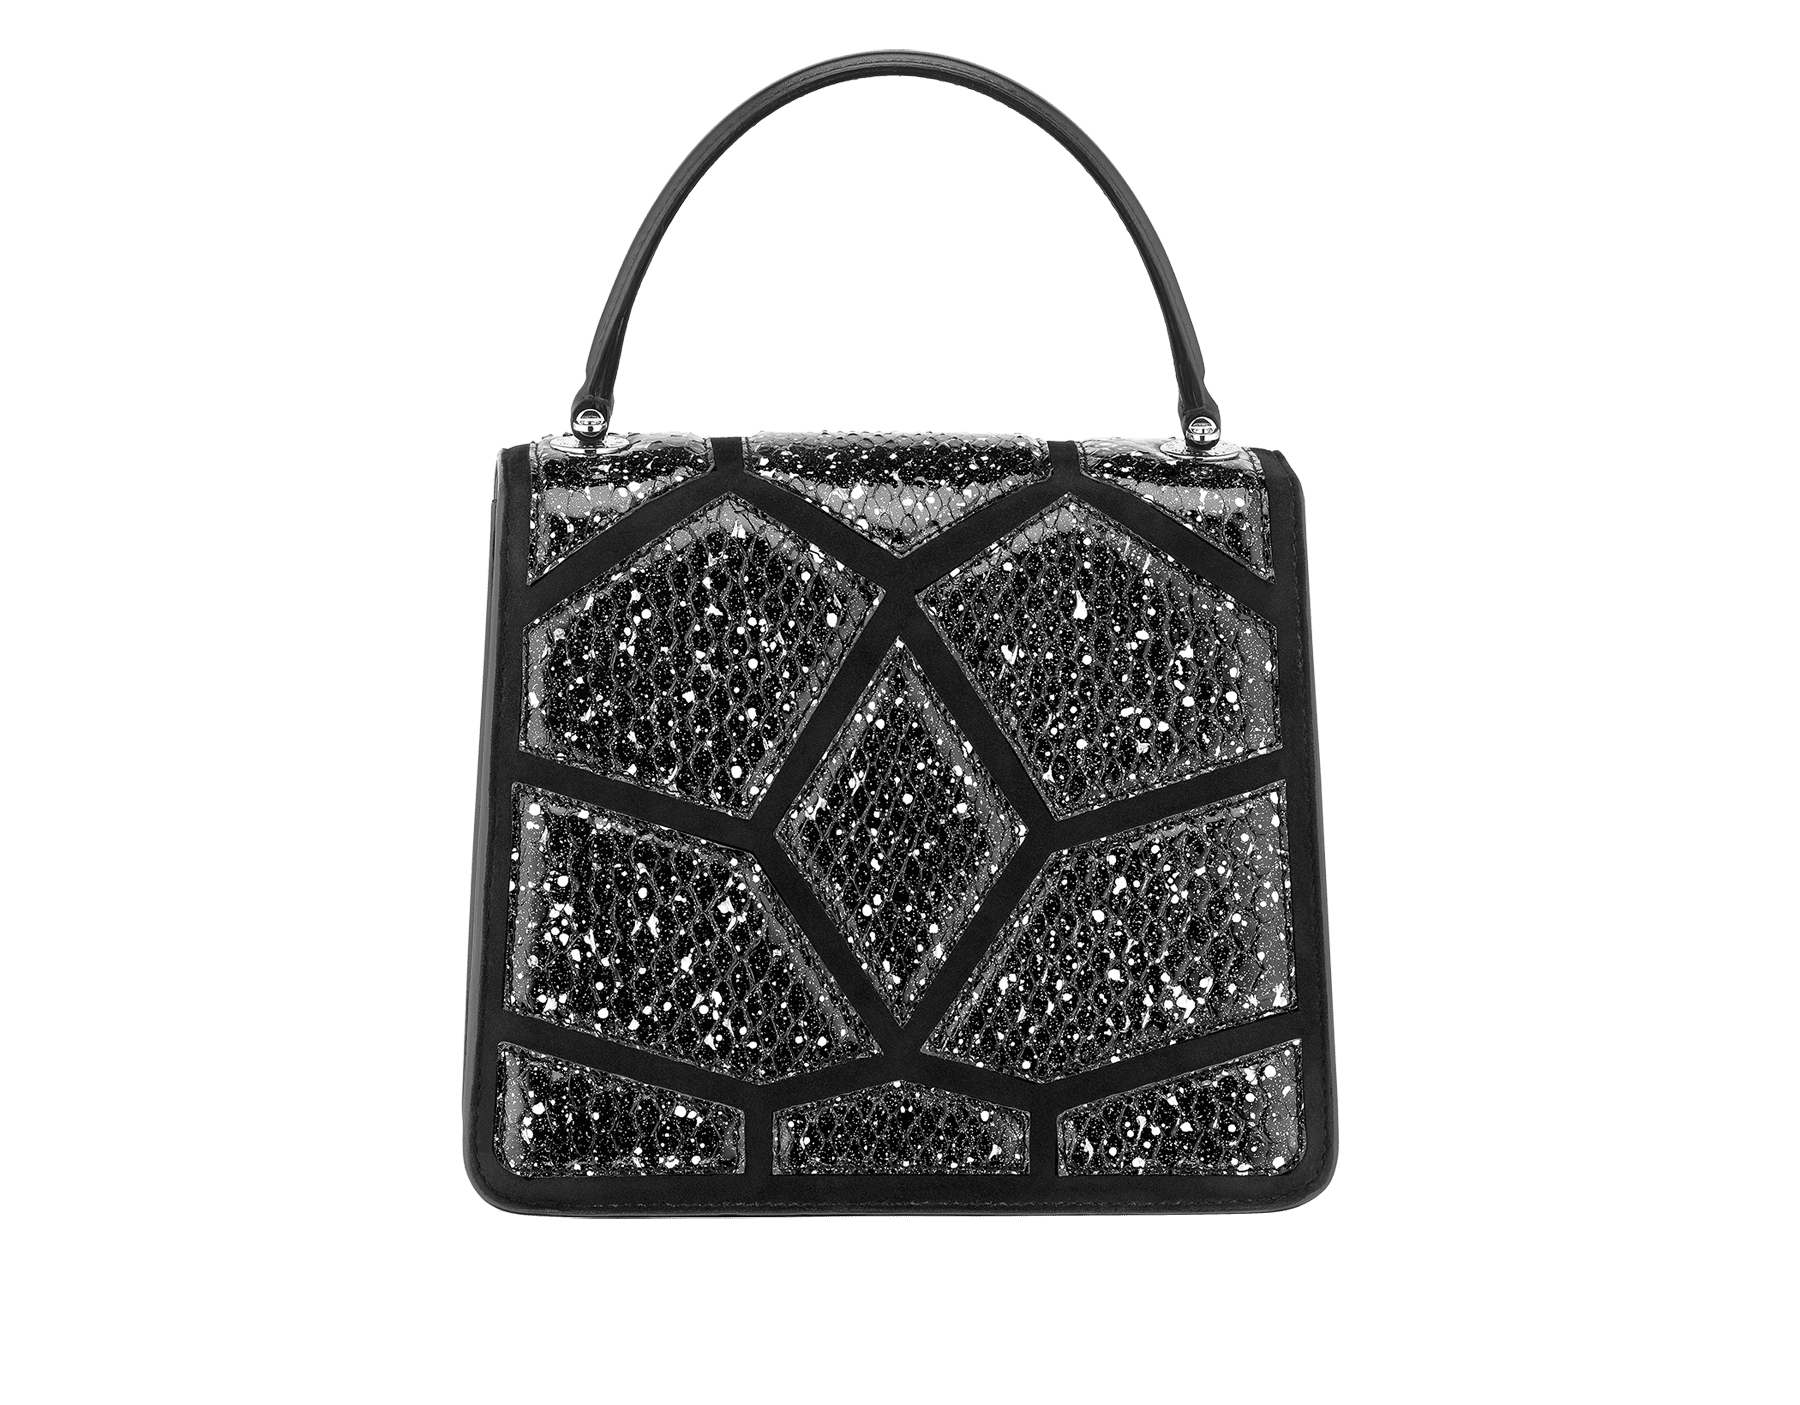 Serpenti Forever crossbody bag in black and white Stardust Cosmic python skin and black calf leather. Snakehead closure in palladium plated brass decorated with black enamel, and black onyx eyes. 288223 image 3